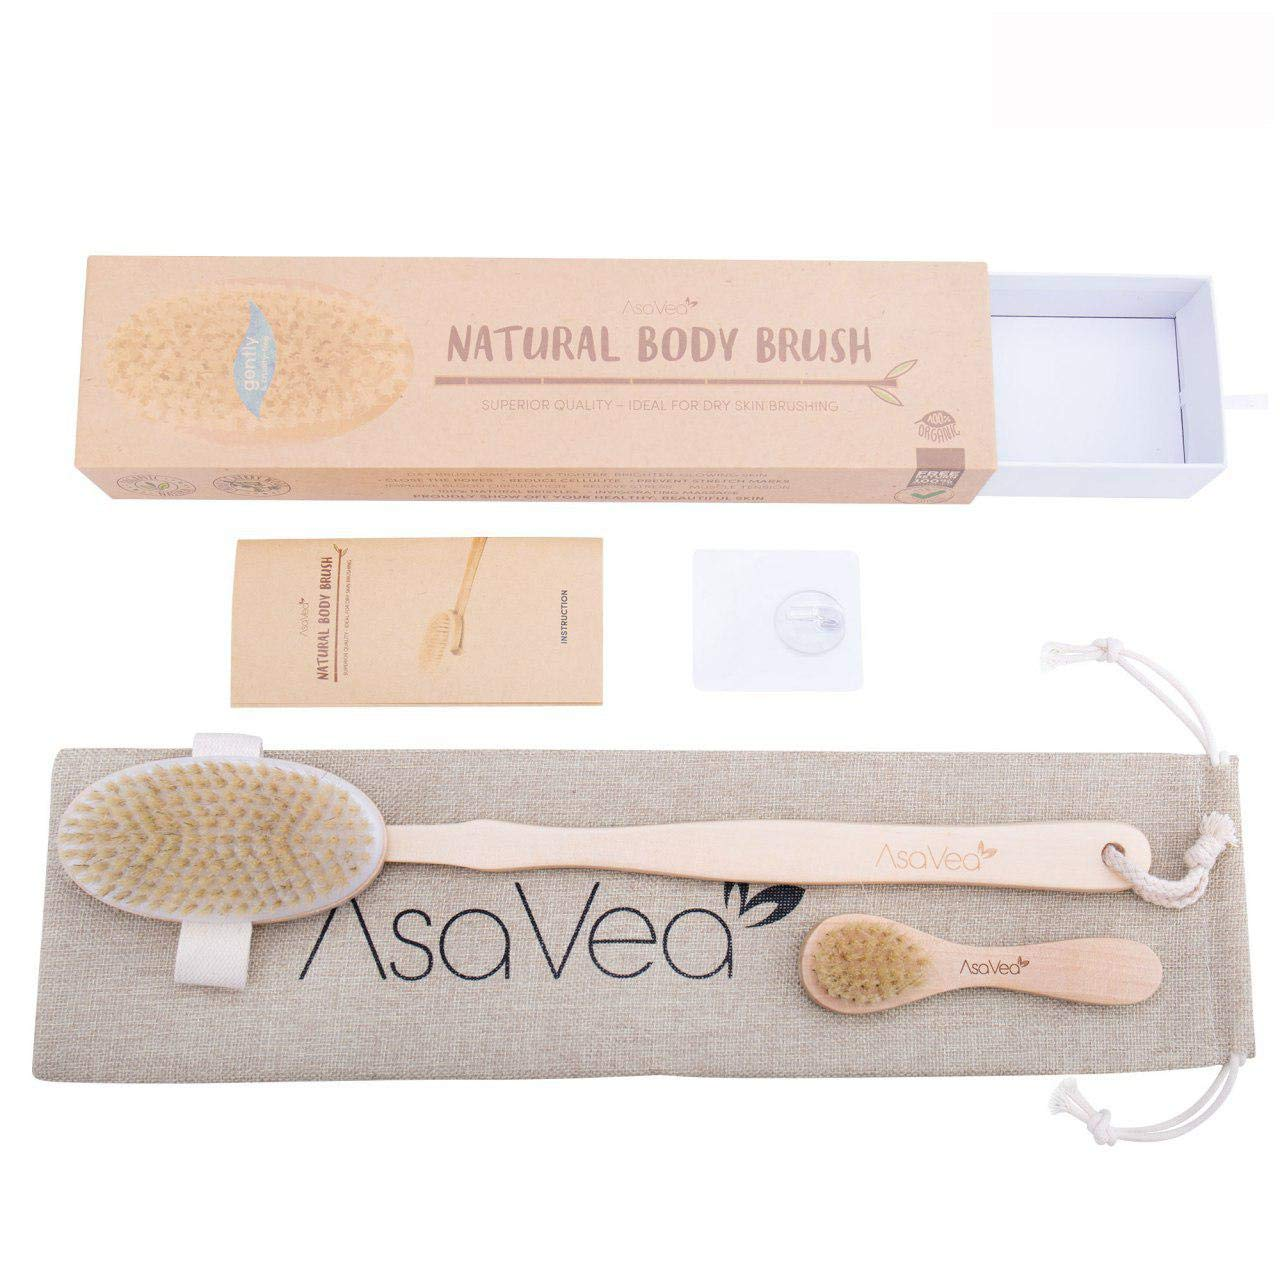 Nature Dry Body Brush & Dry Skin Brushing - Reduces Cellulite Stress All-Natural Materials Long Wood Handle Boar Bristle Brushy US Acrylic 5910